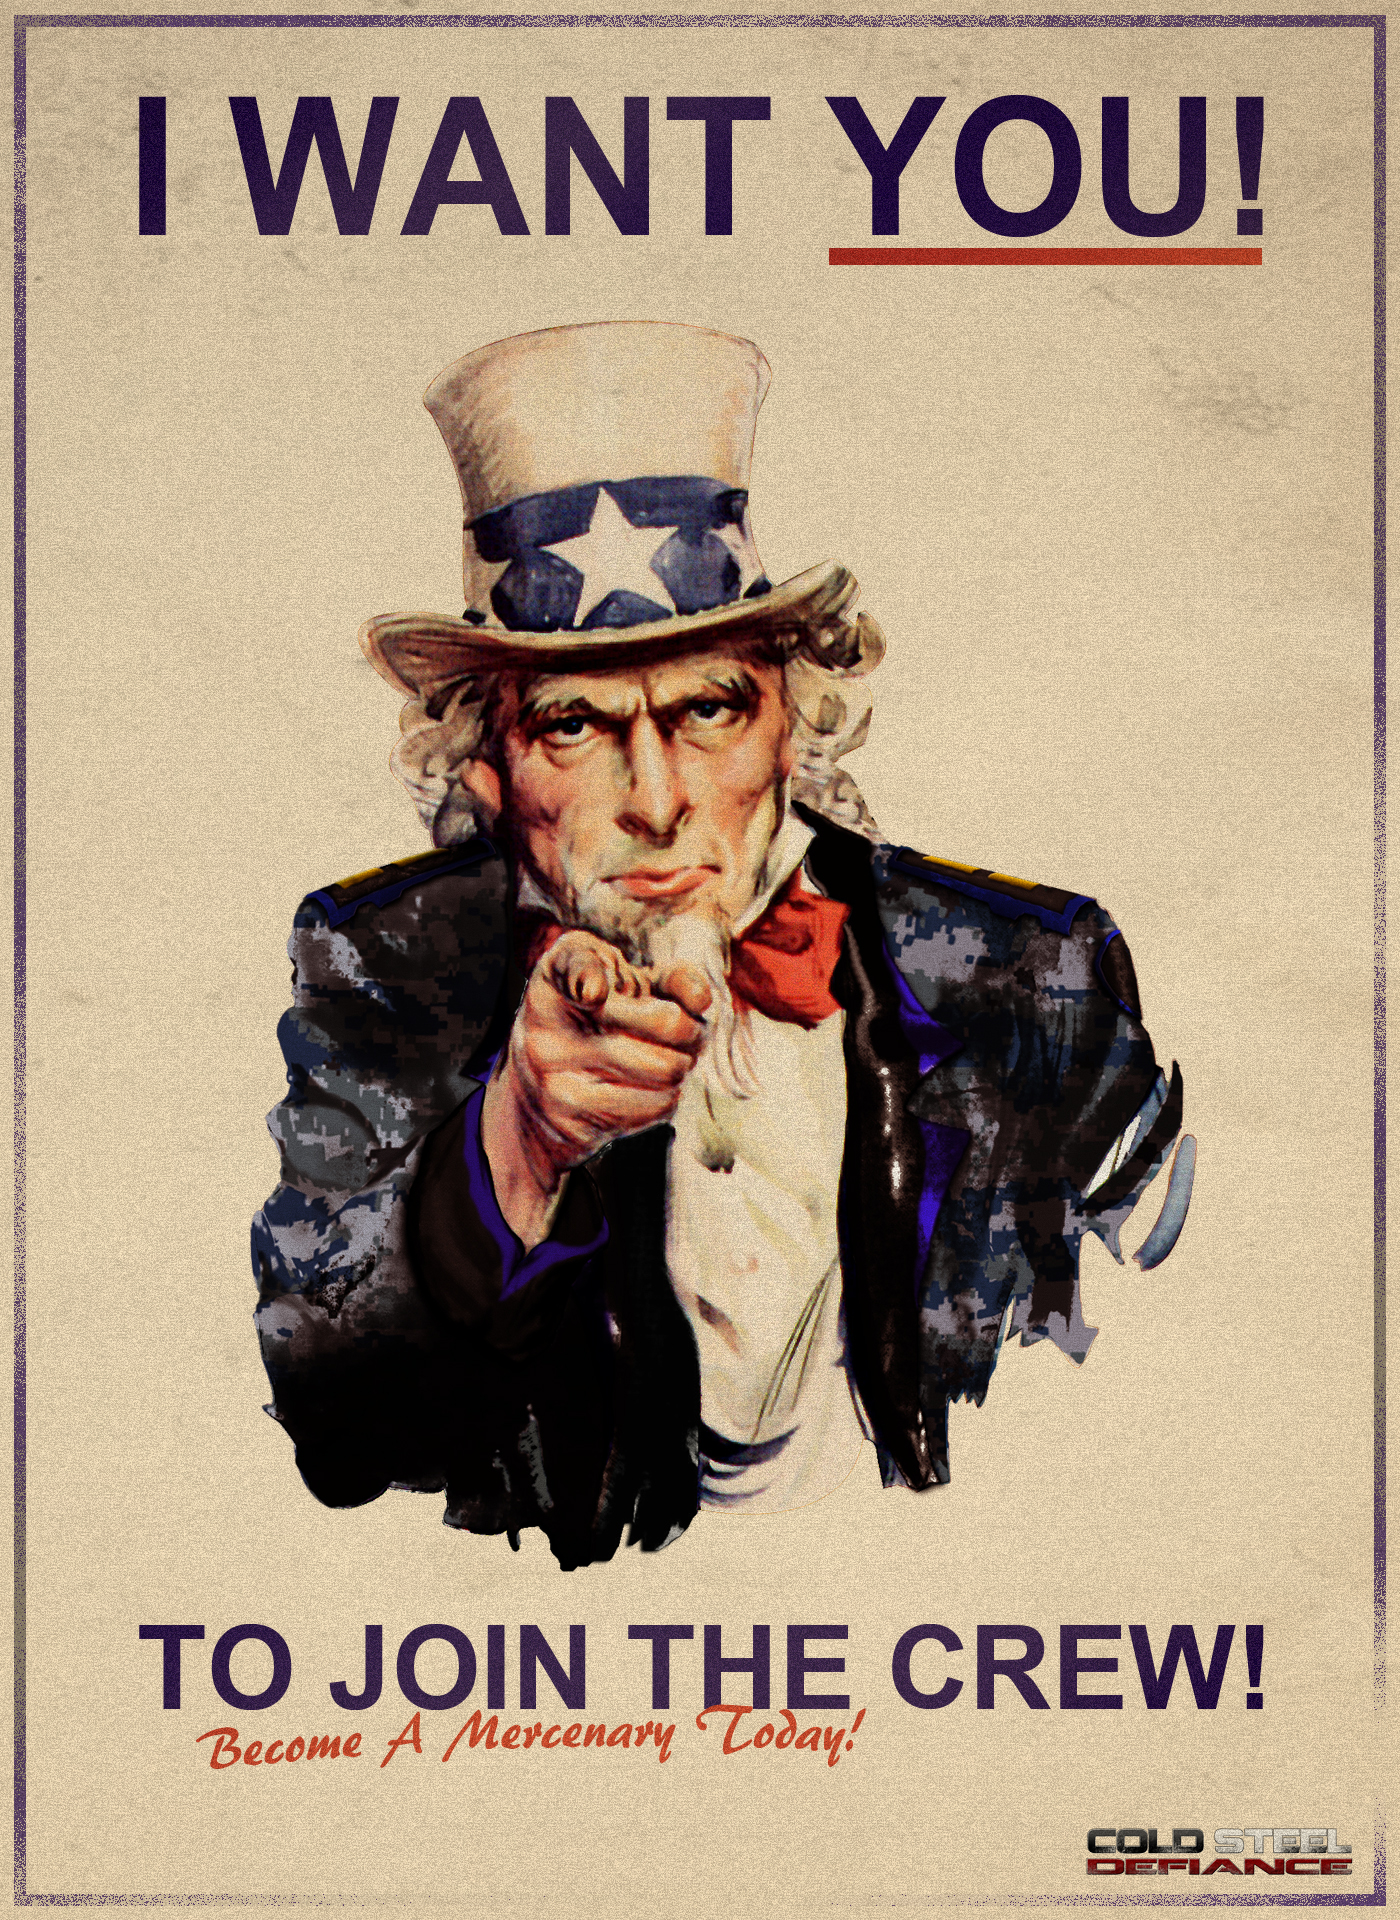 I Want You To Join The Crew! Image